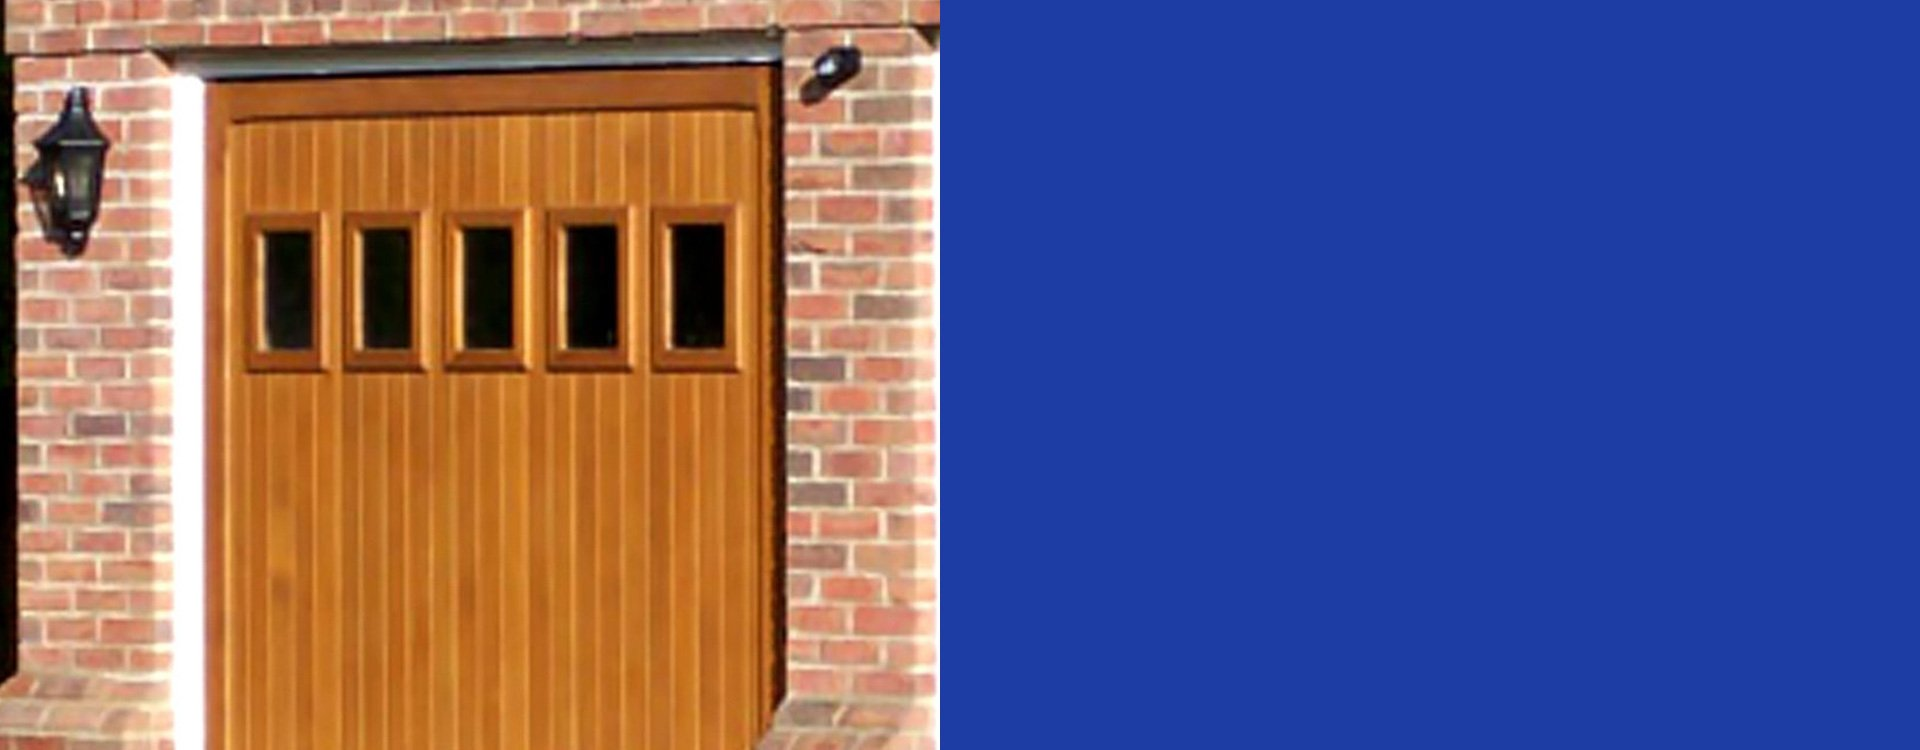 Contact premier garage doors gates in buckinghamshire for Premier garage doors